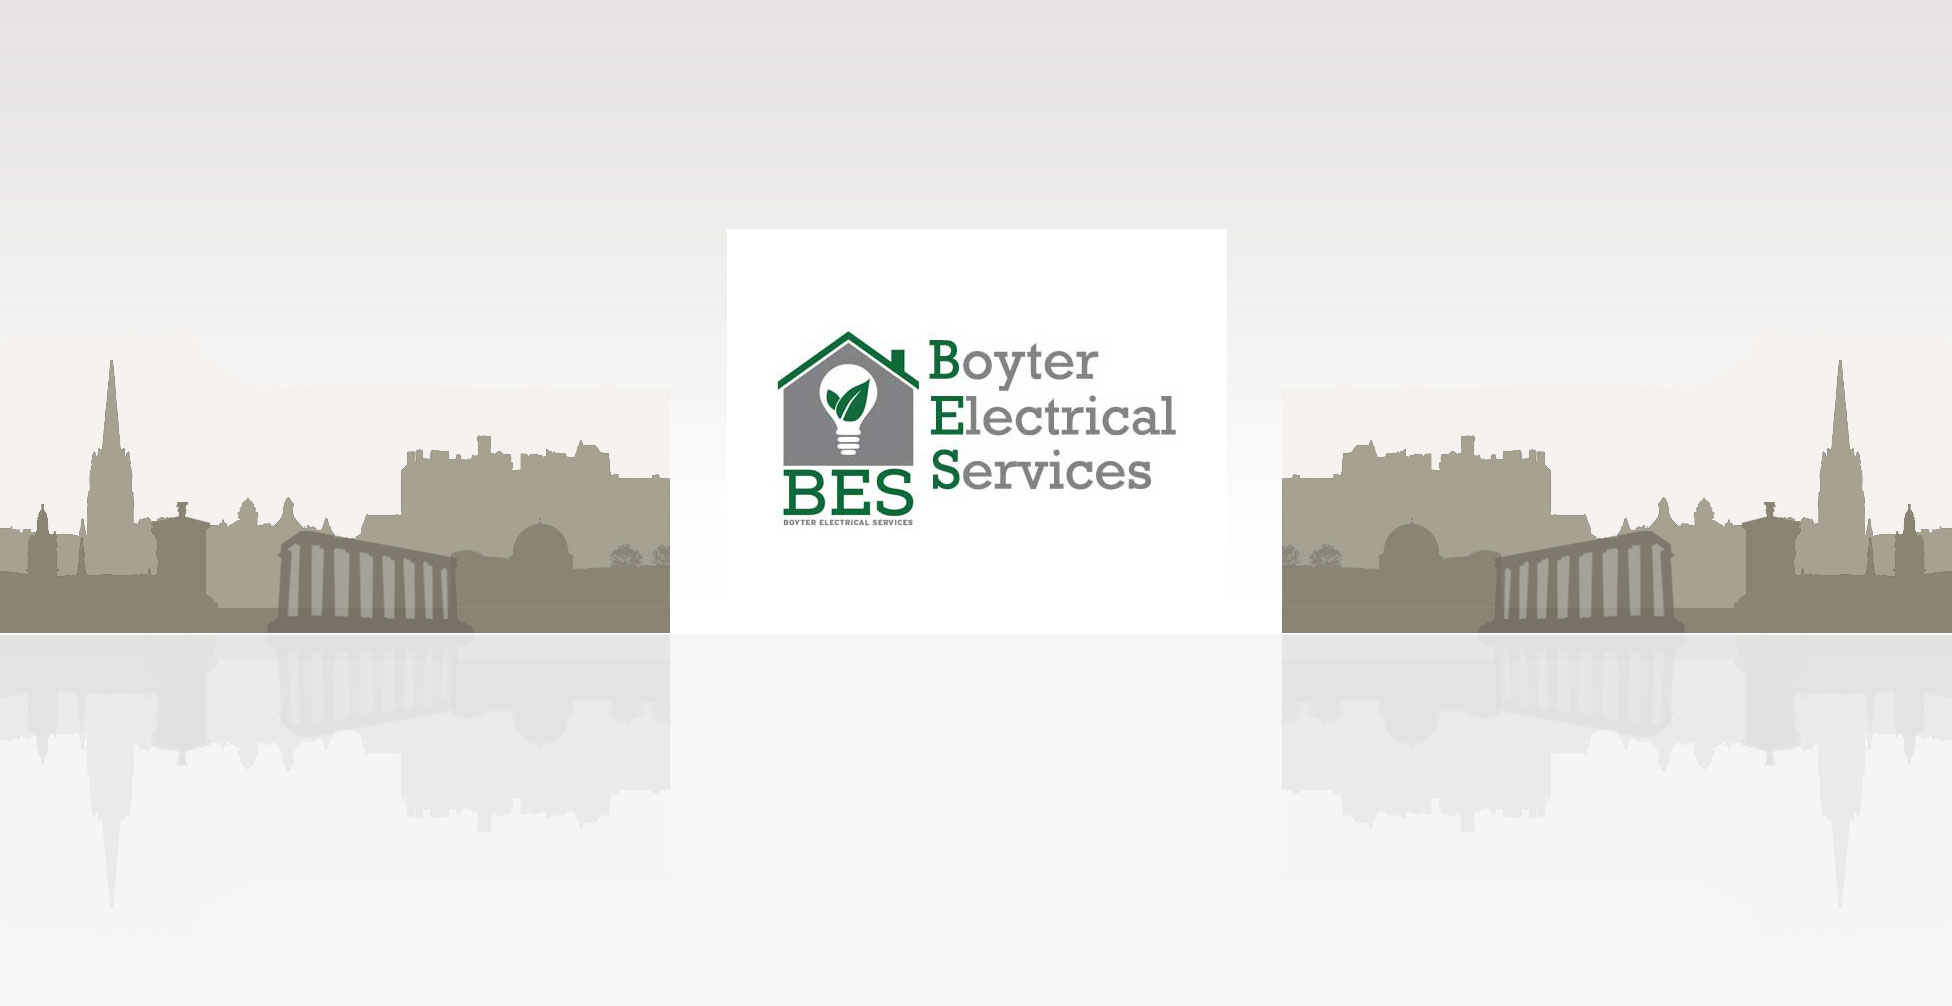 Boyter Electrical Services Ltd background image